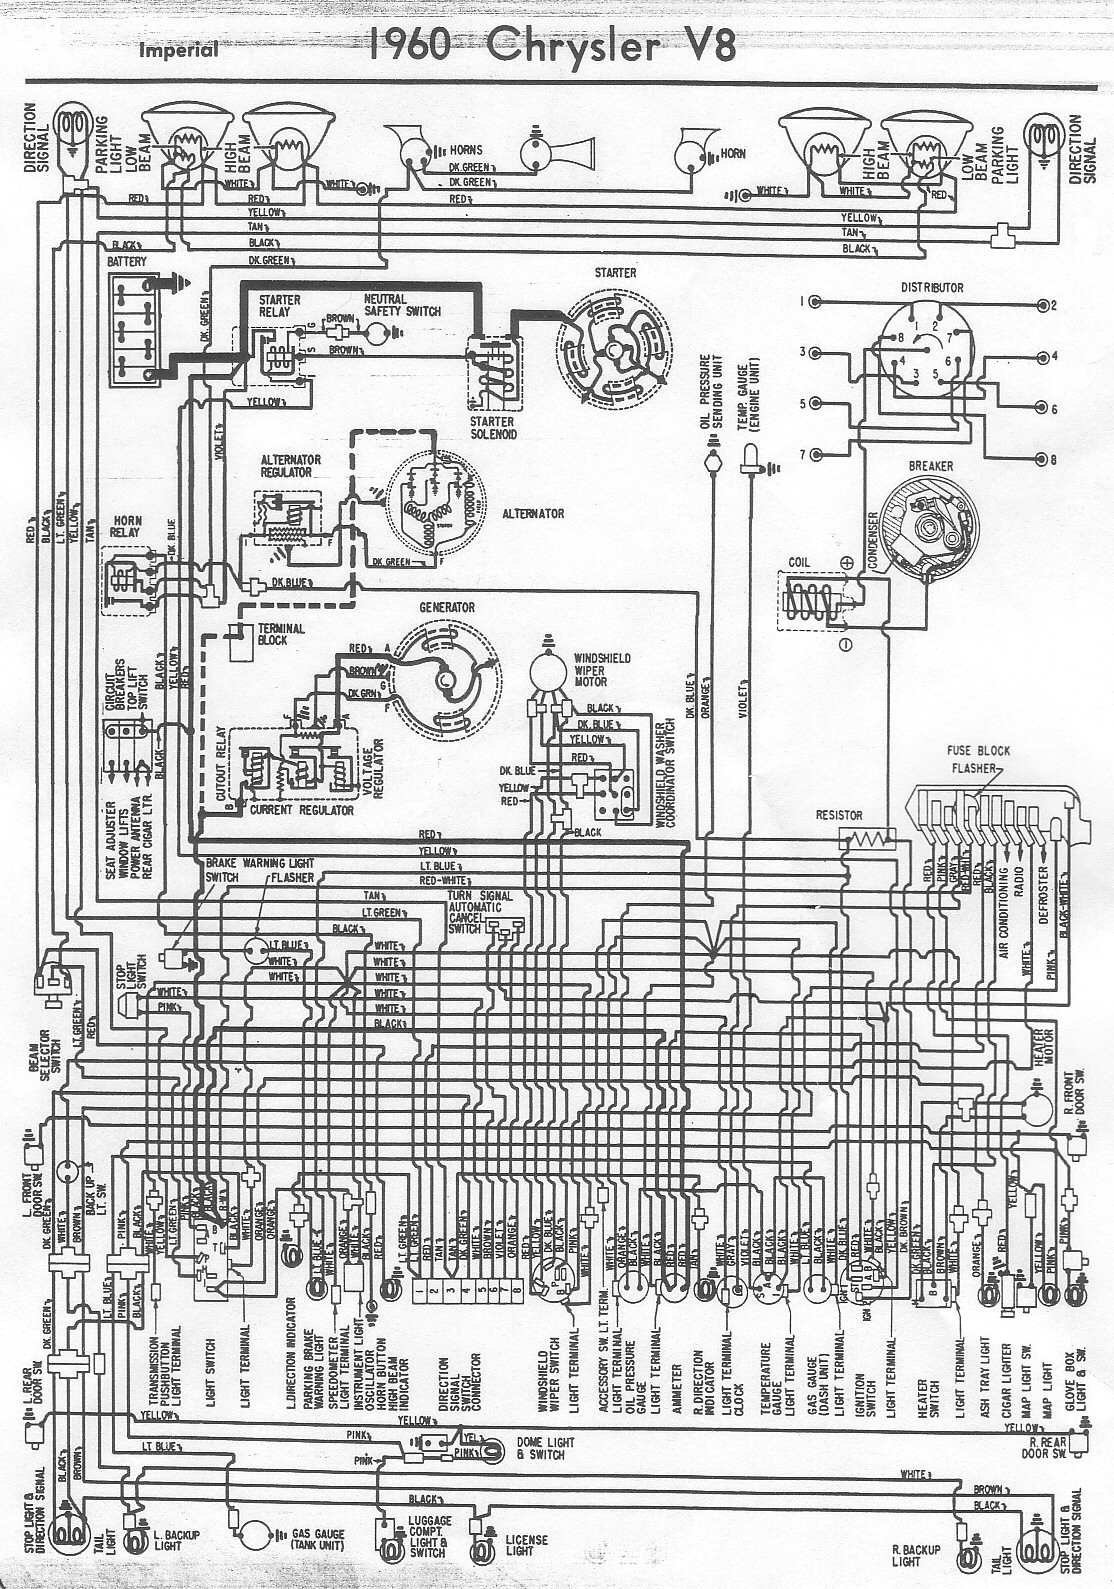 Wiring Harness For 1961 Imperial Diagram Services Chrysler Free Auto 1960 V8 Rh Autowiringdiagram Blogspot Com Car Engine